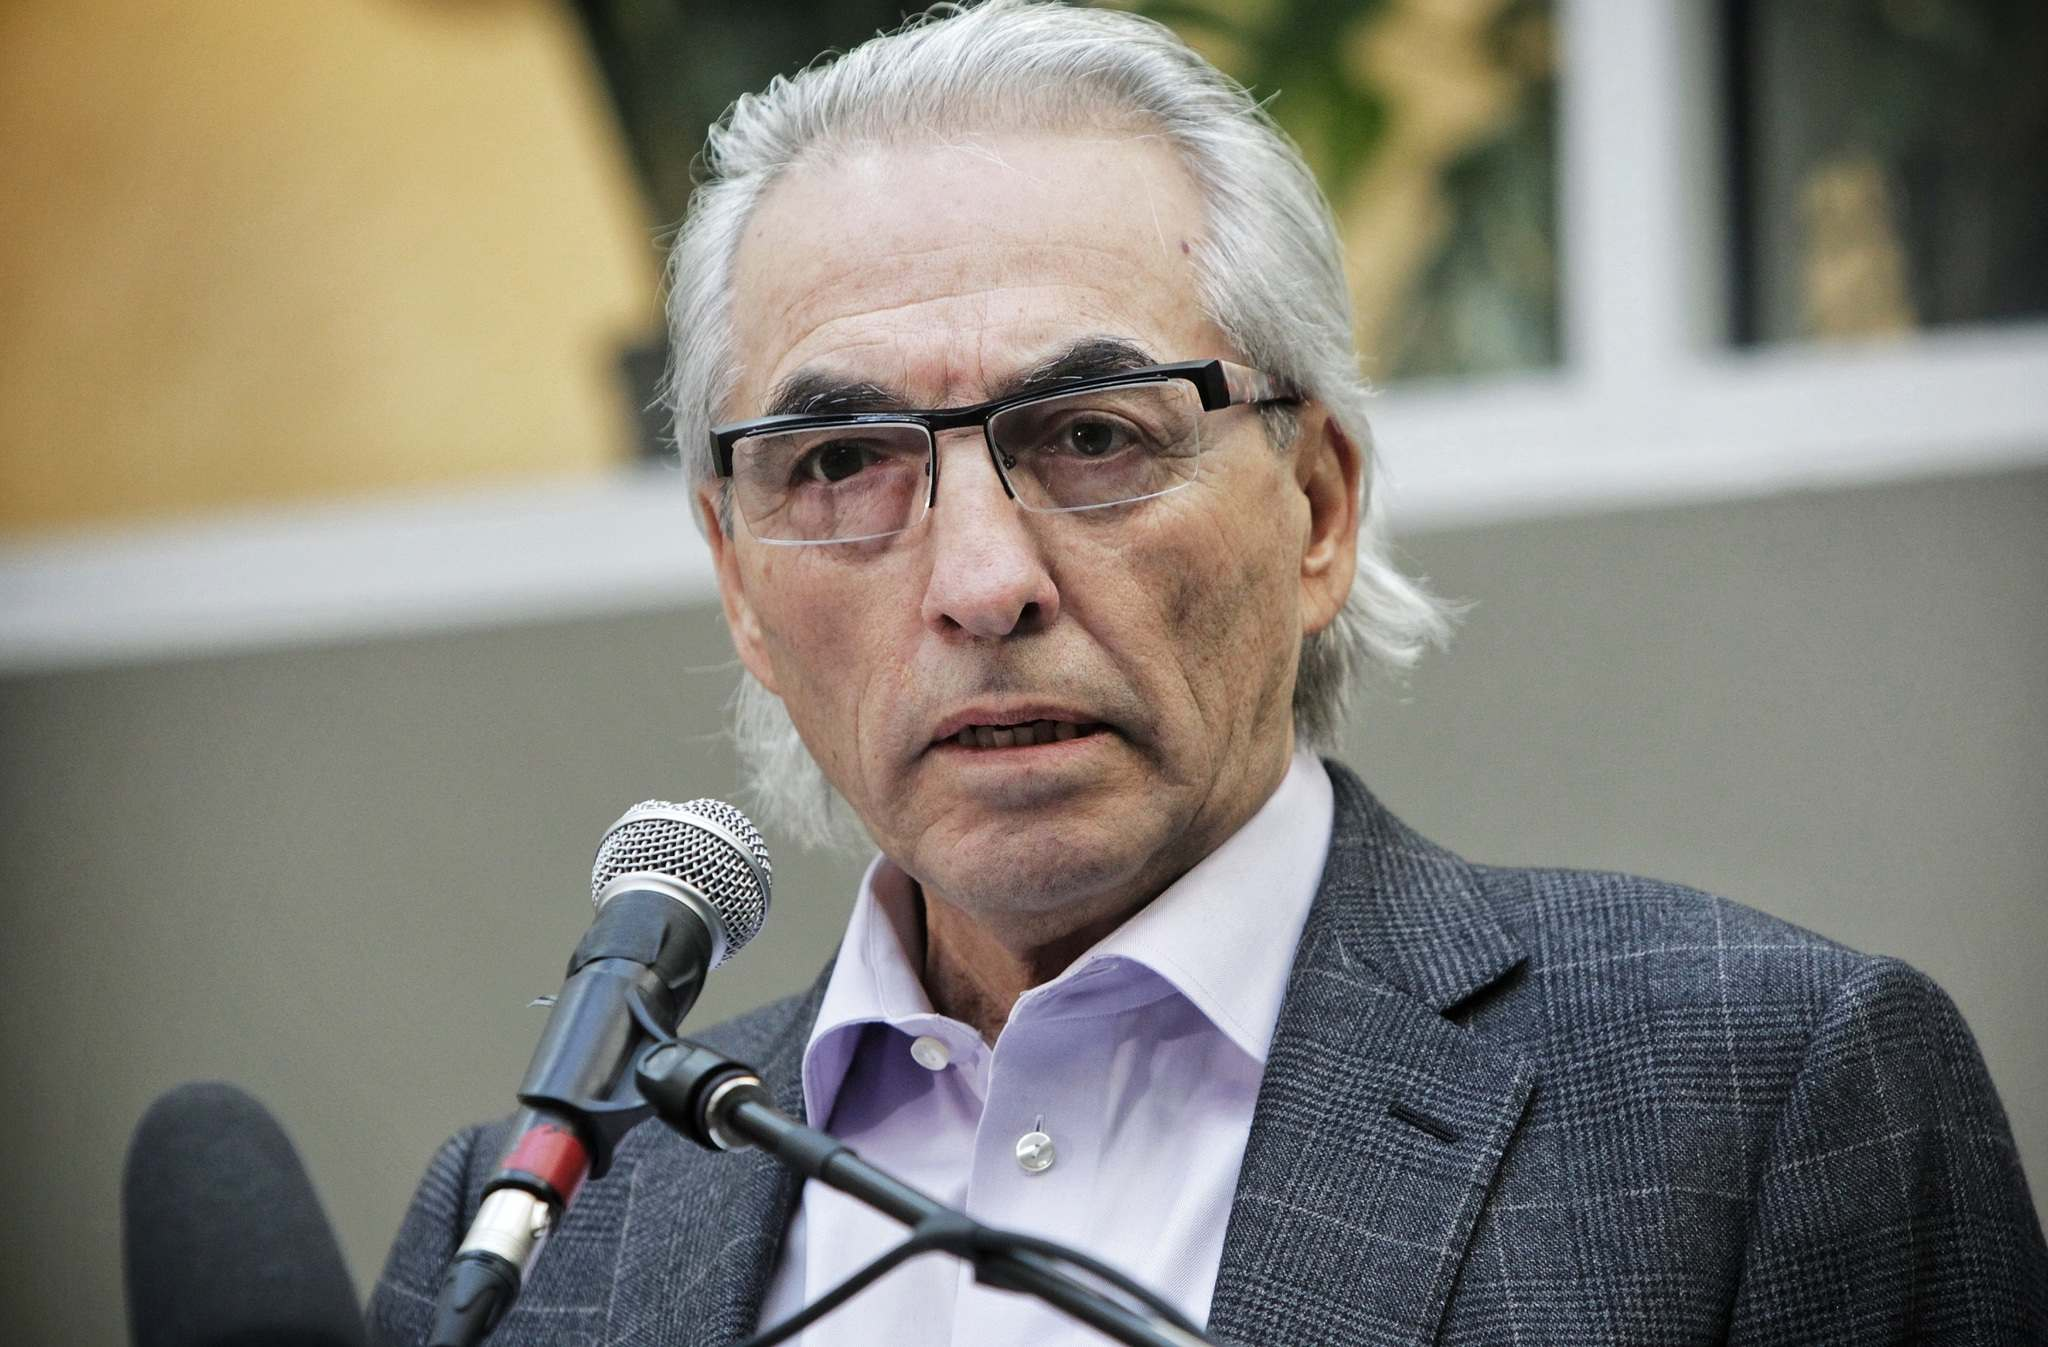 MIKE DEAL ./ WINNIPEG FREE PRESS FILES</p><p>Former National Chief Phil Fontaine </p>